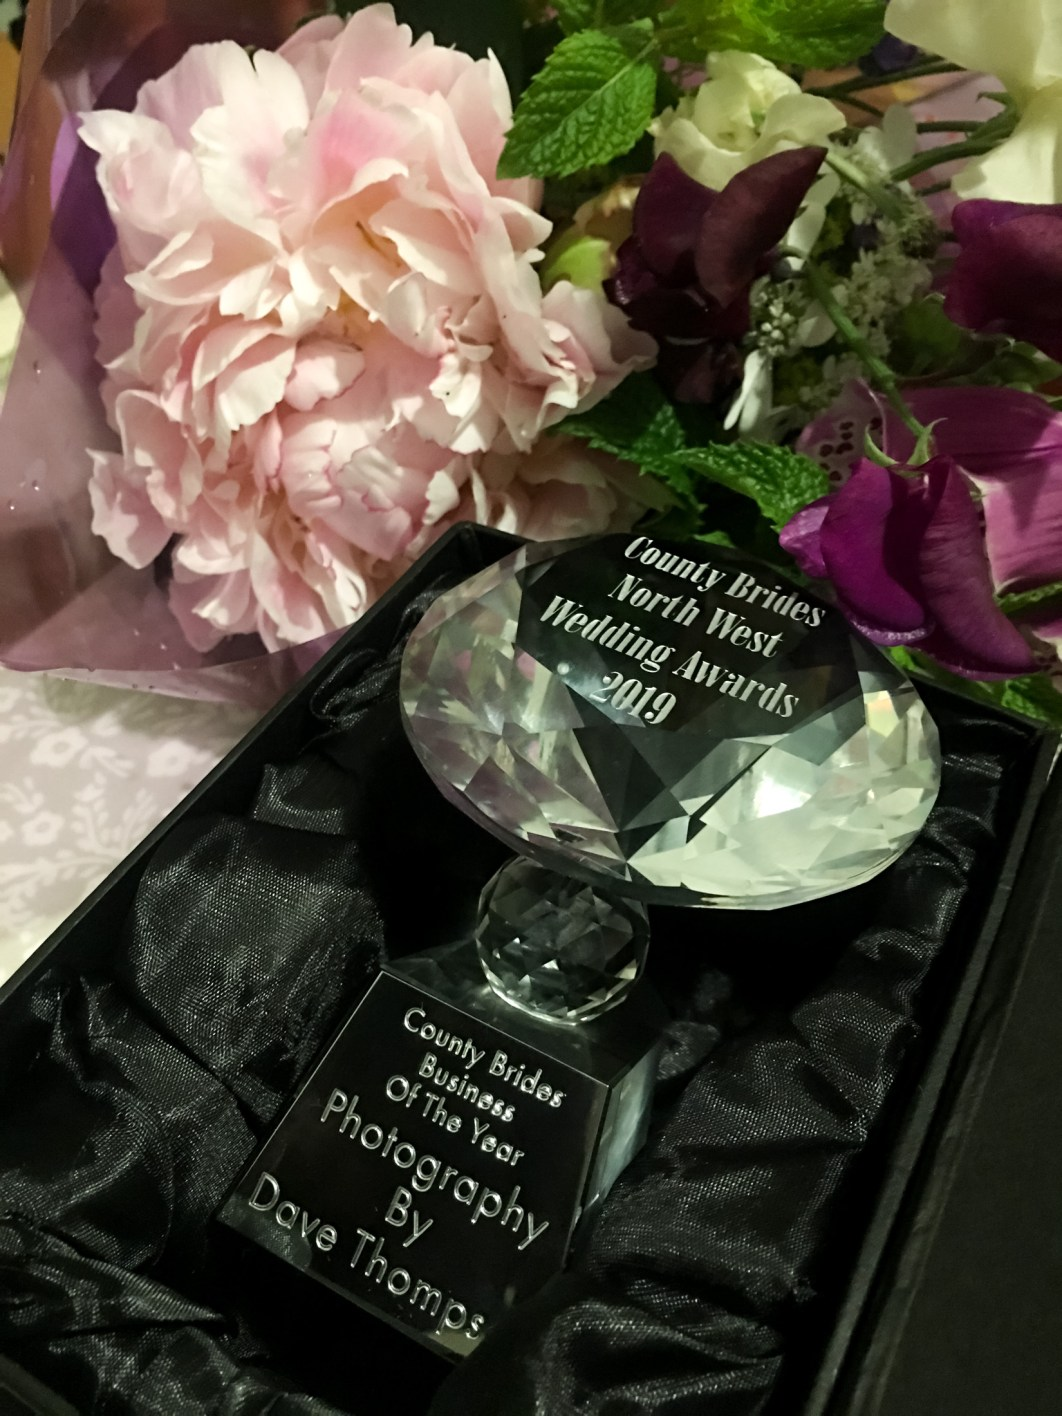 North West Wedding Awards Business of the Year 2019 award